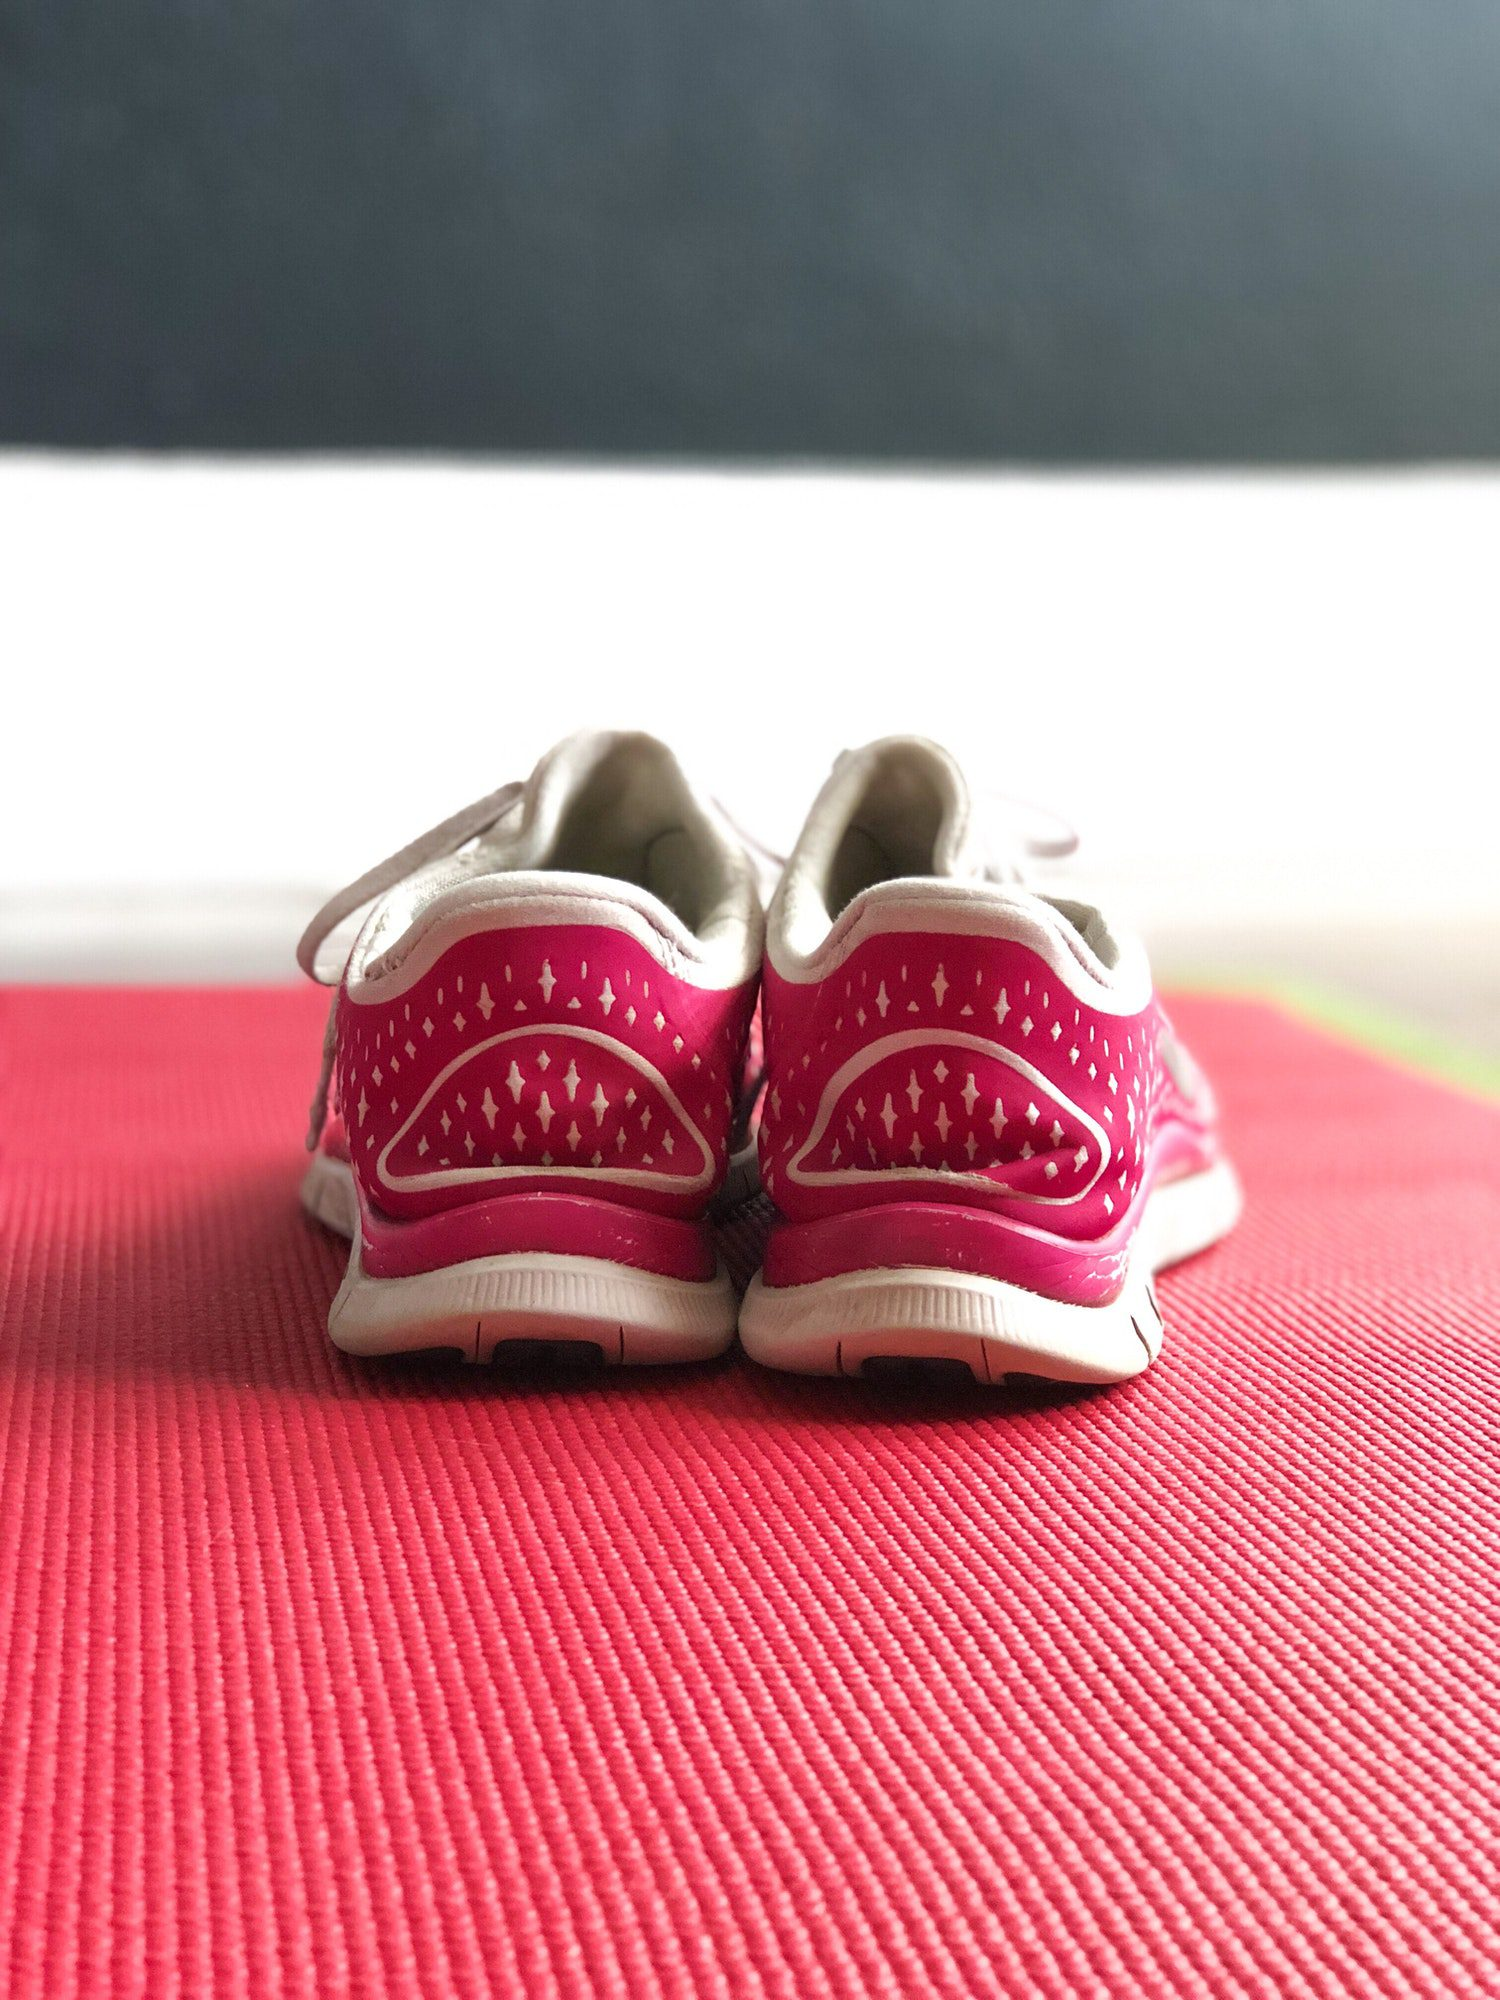 A pair of pink tennis shoes resting on a yoga mat at a gym.